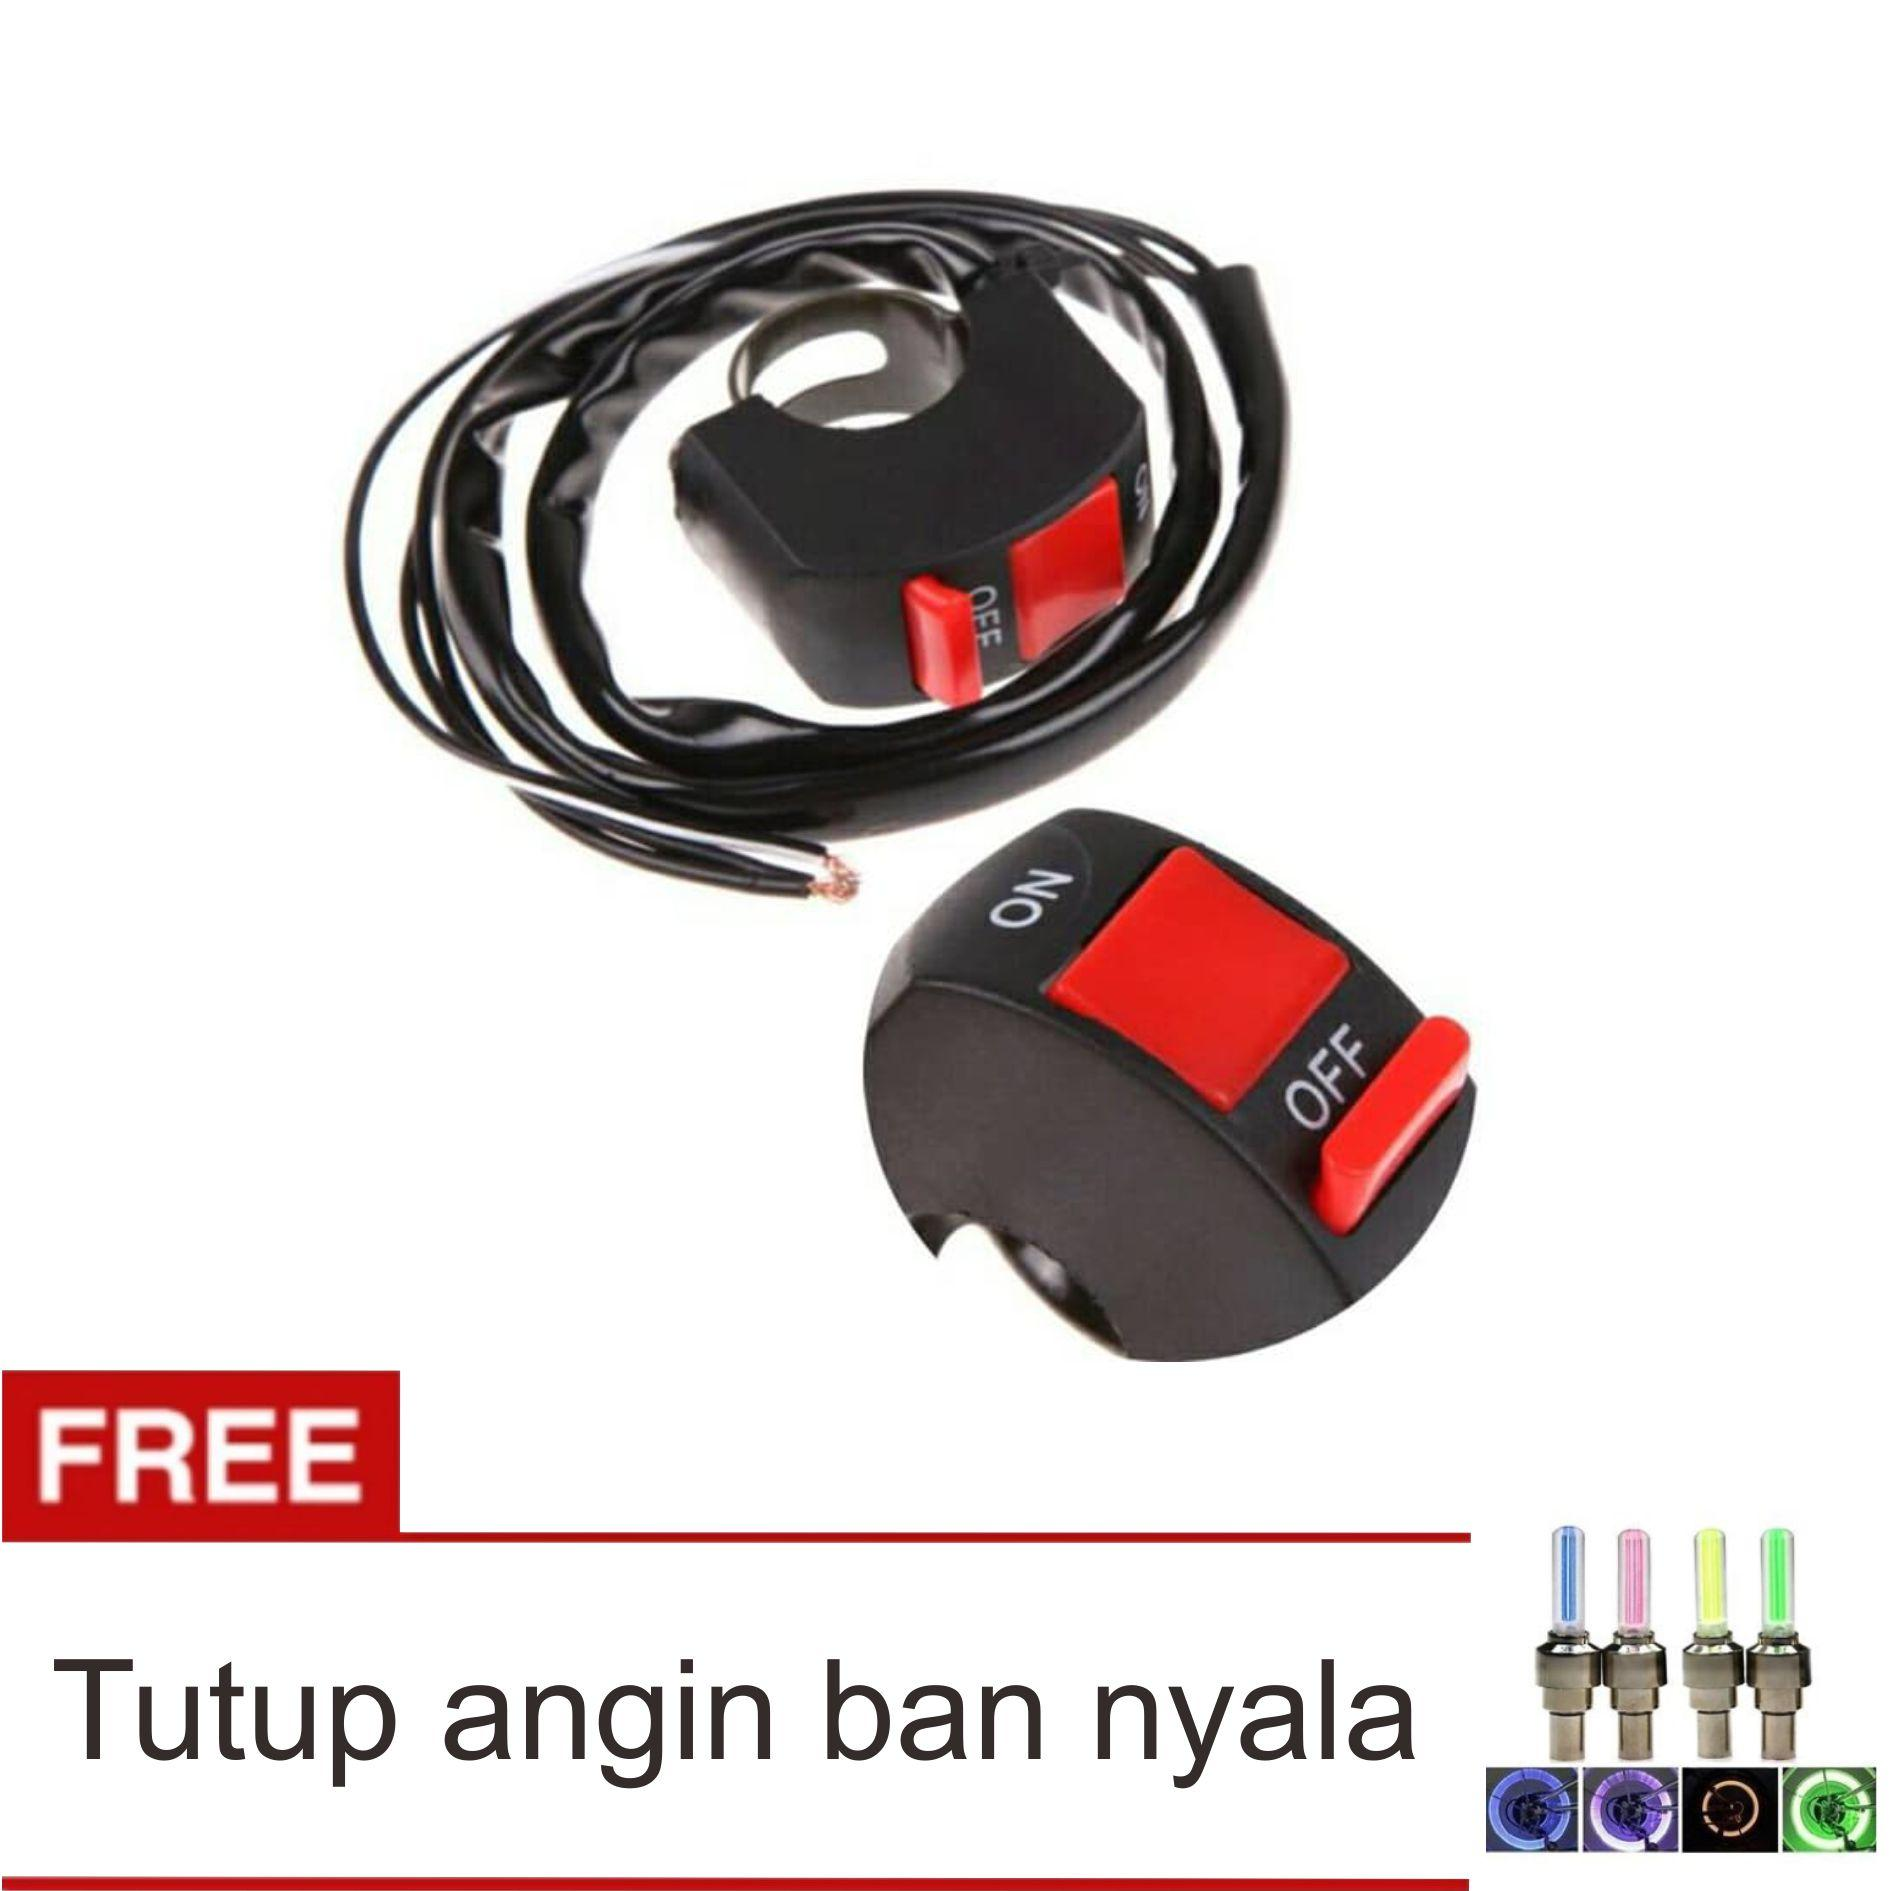 Lanjarjaya Saklar On Off Lampu Motor Model Stang + Tutup Angin Ban Nyala Set